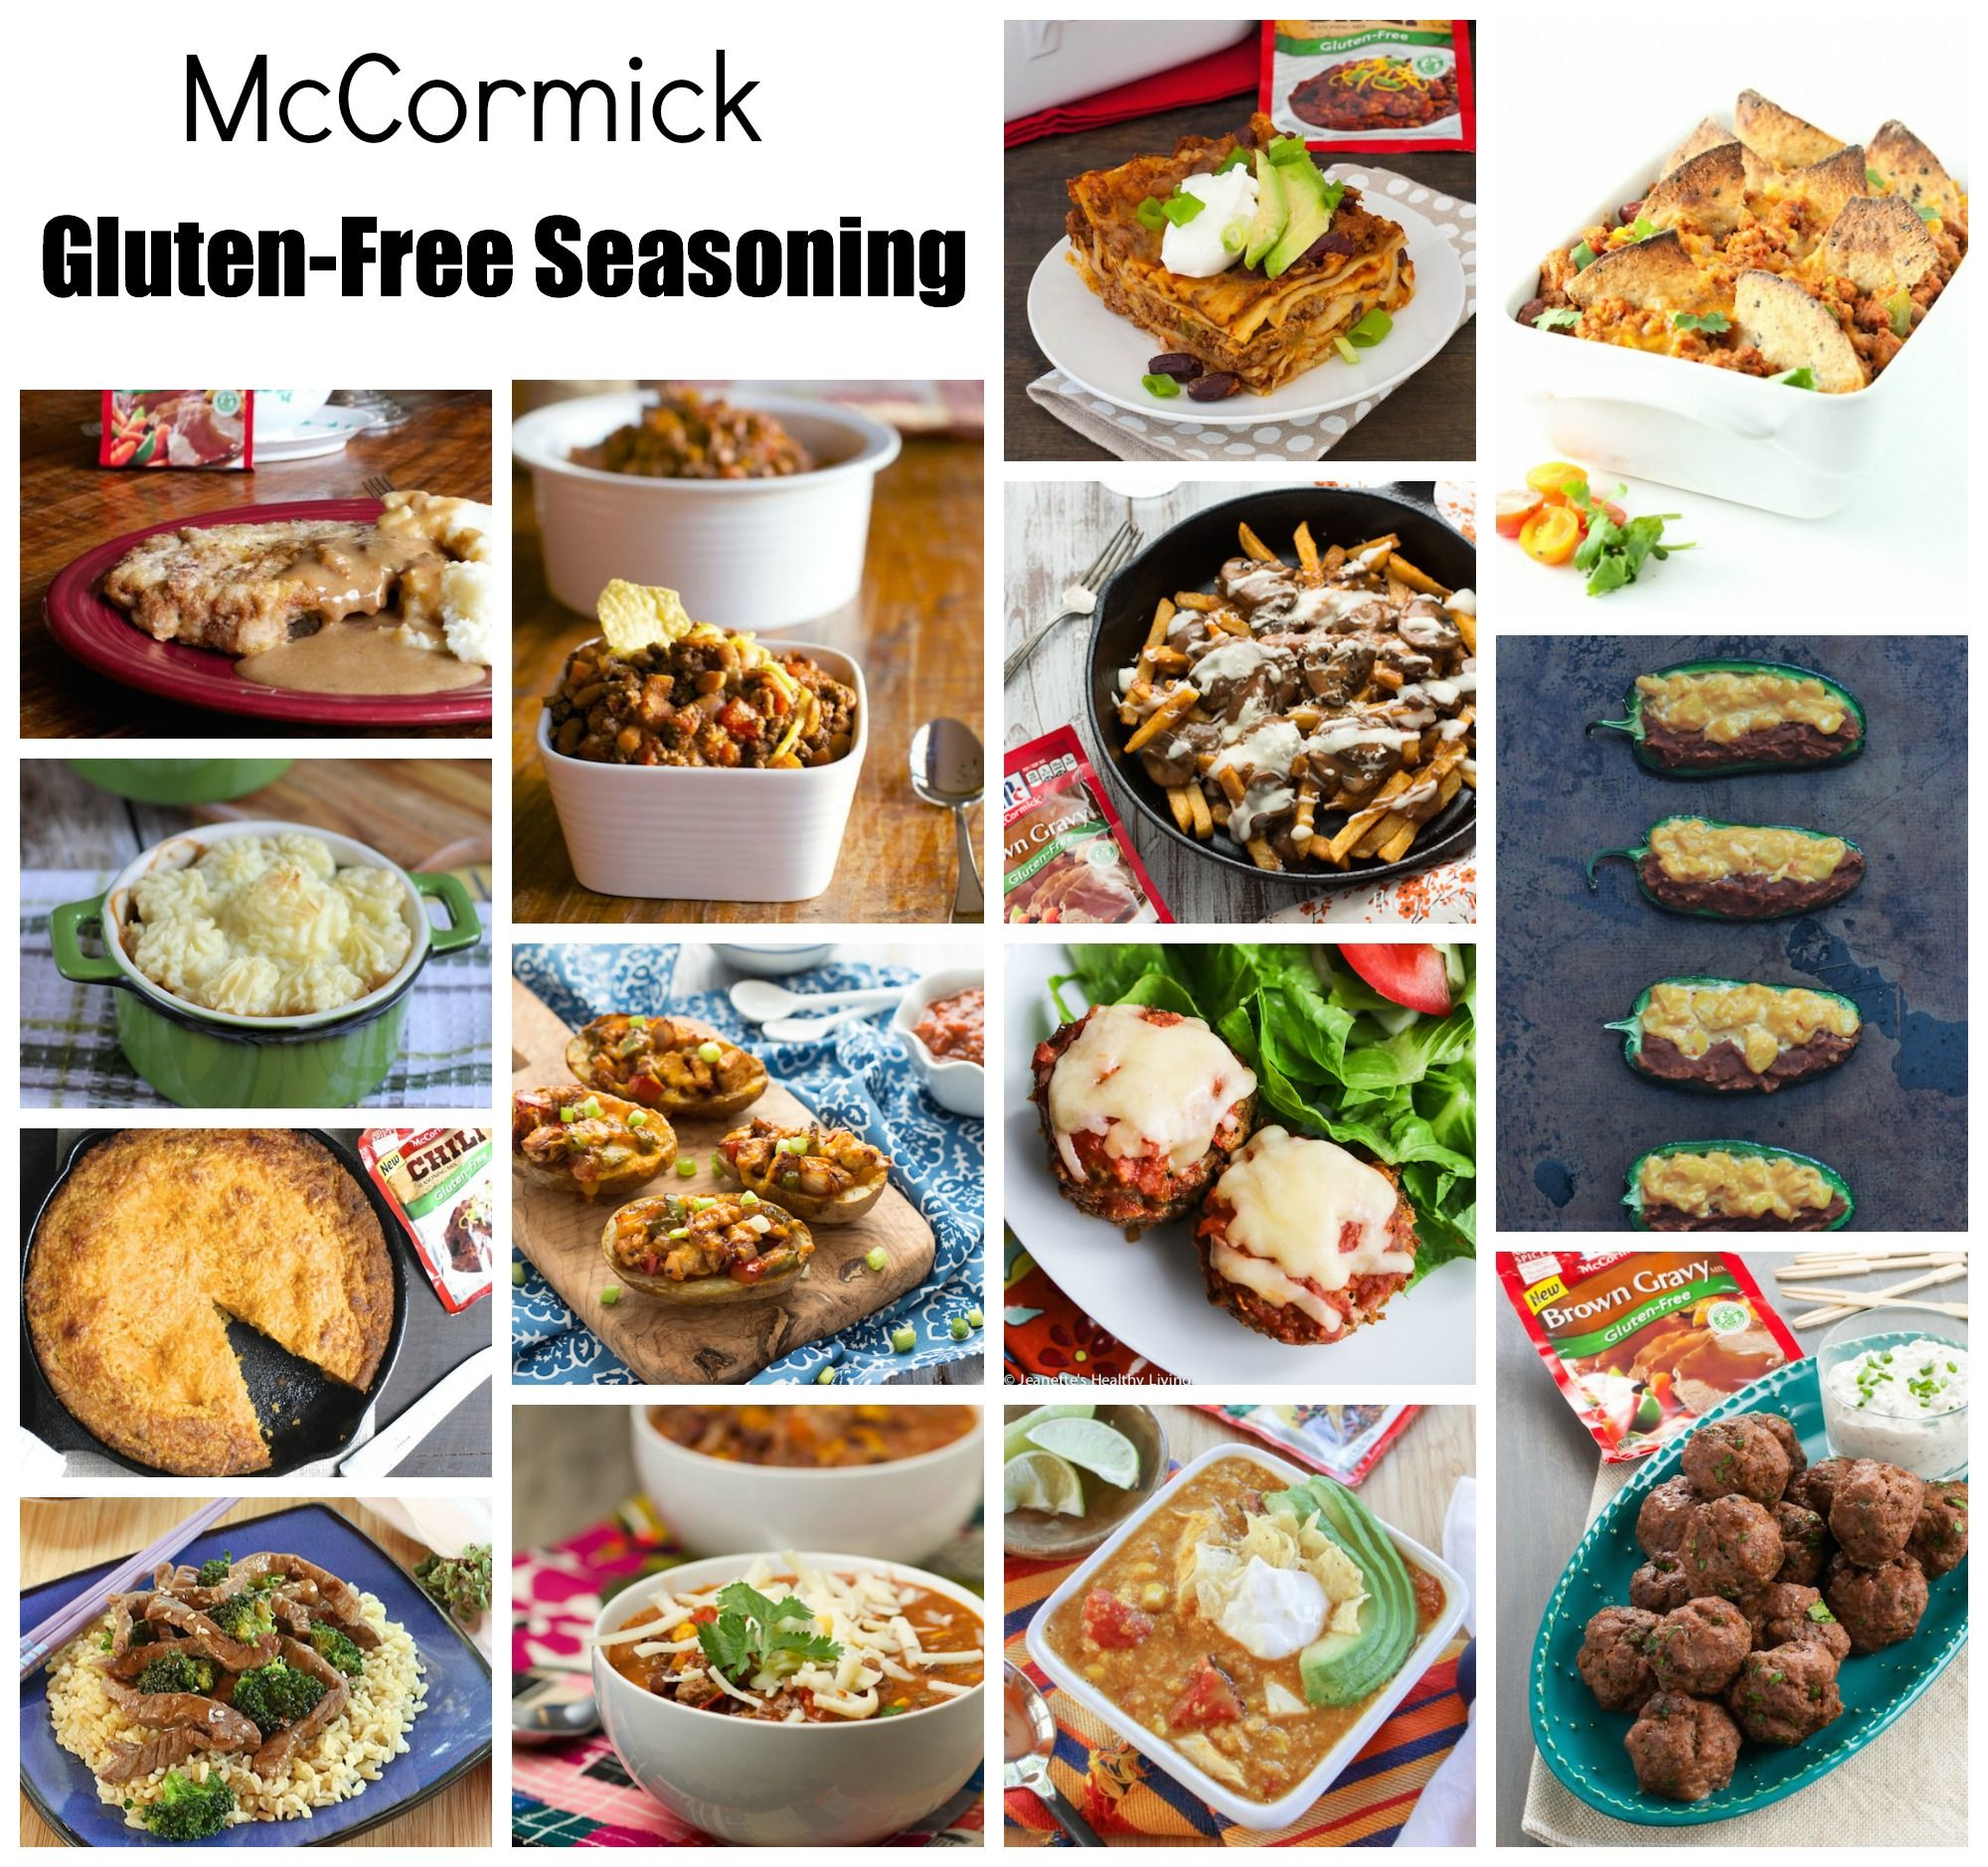 28 ways to make gluten free great with mccormick gluten free